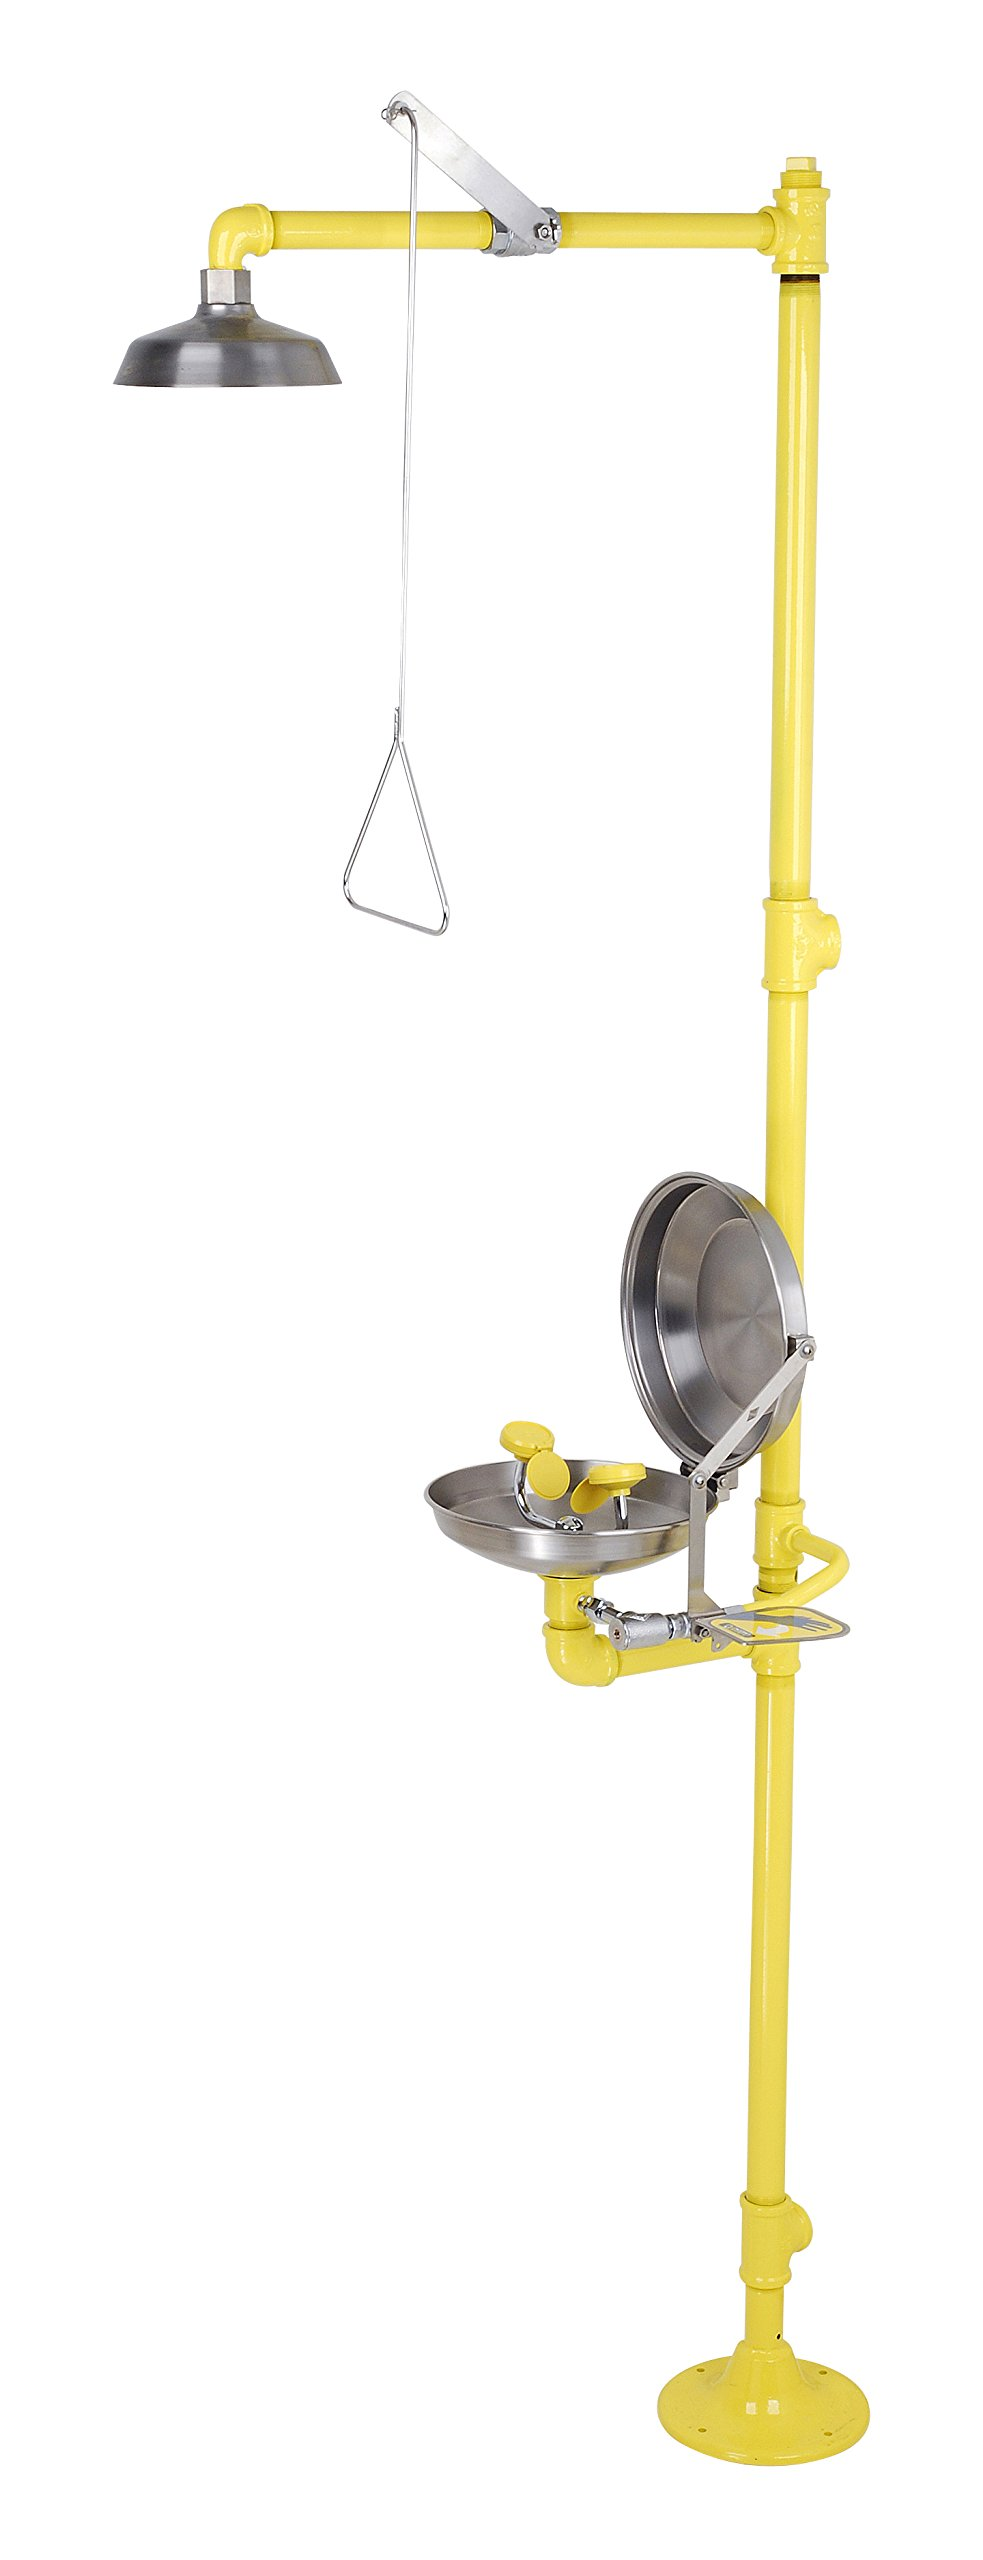 Acorn Safety Combination Showers S2340-CS1 Combo Station Floor Mounted Eye/Face Wash Bowl & Cover Showerhead